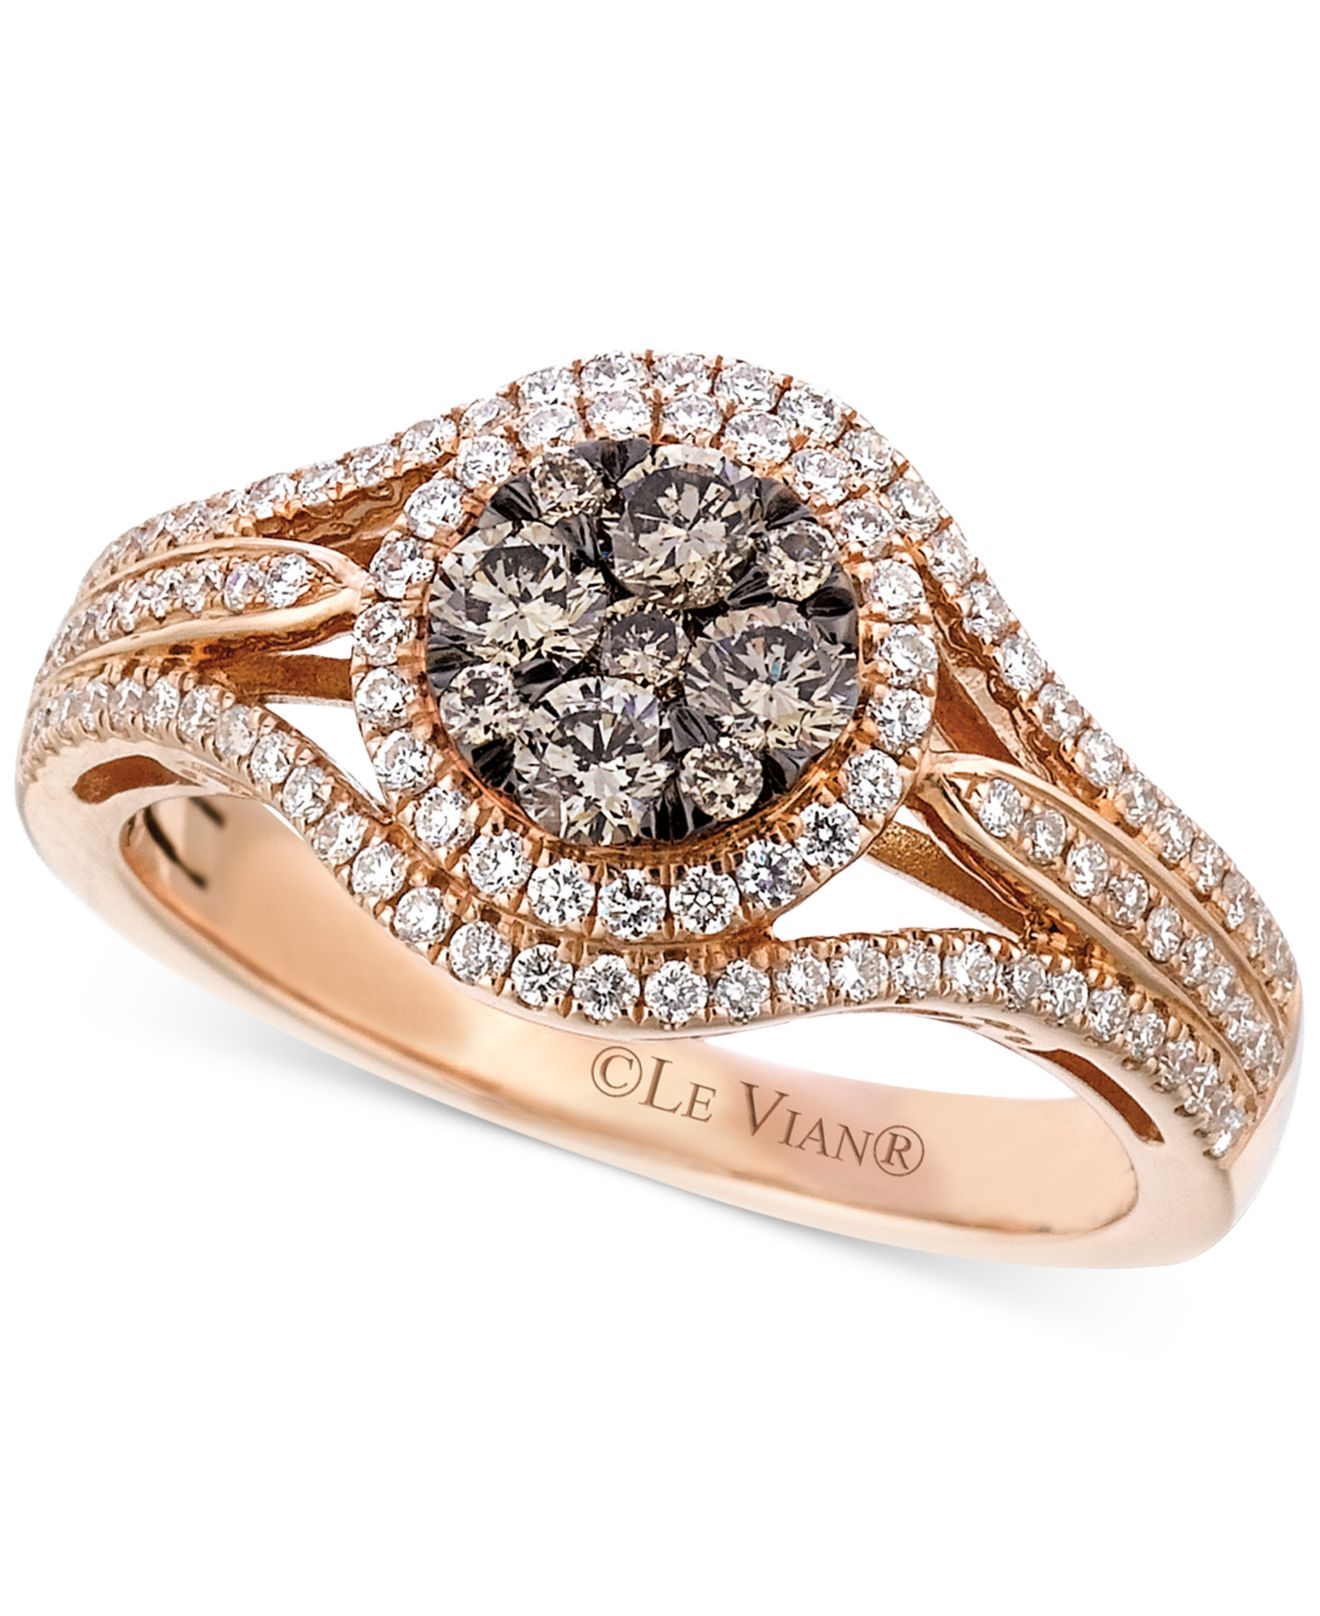 Le vian Brown And White Diamond Ring 7 8 Ct T w In 14k Rose